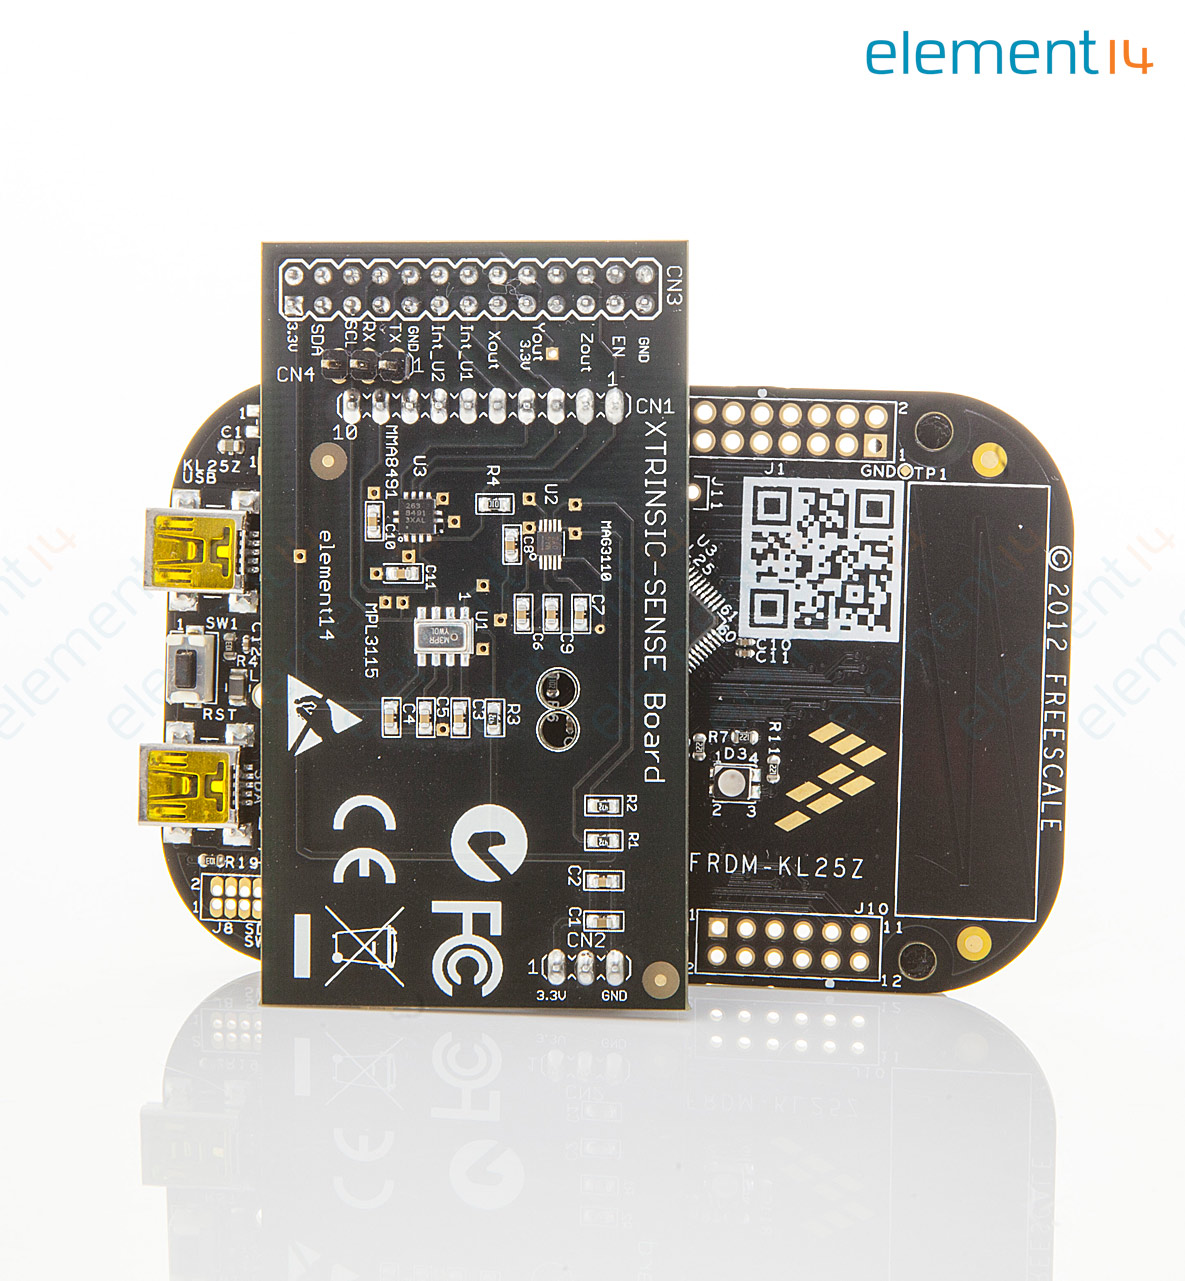 Xtrinsic Sensors Evk Nxp Evaluation Kit For Electronics Learning Circuits Webonly Products Technology Richmedia 355kb En